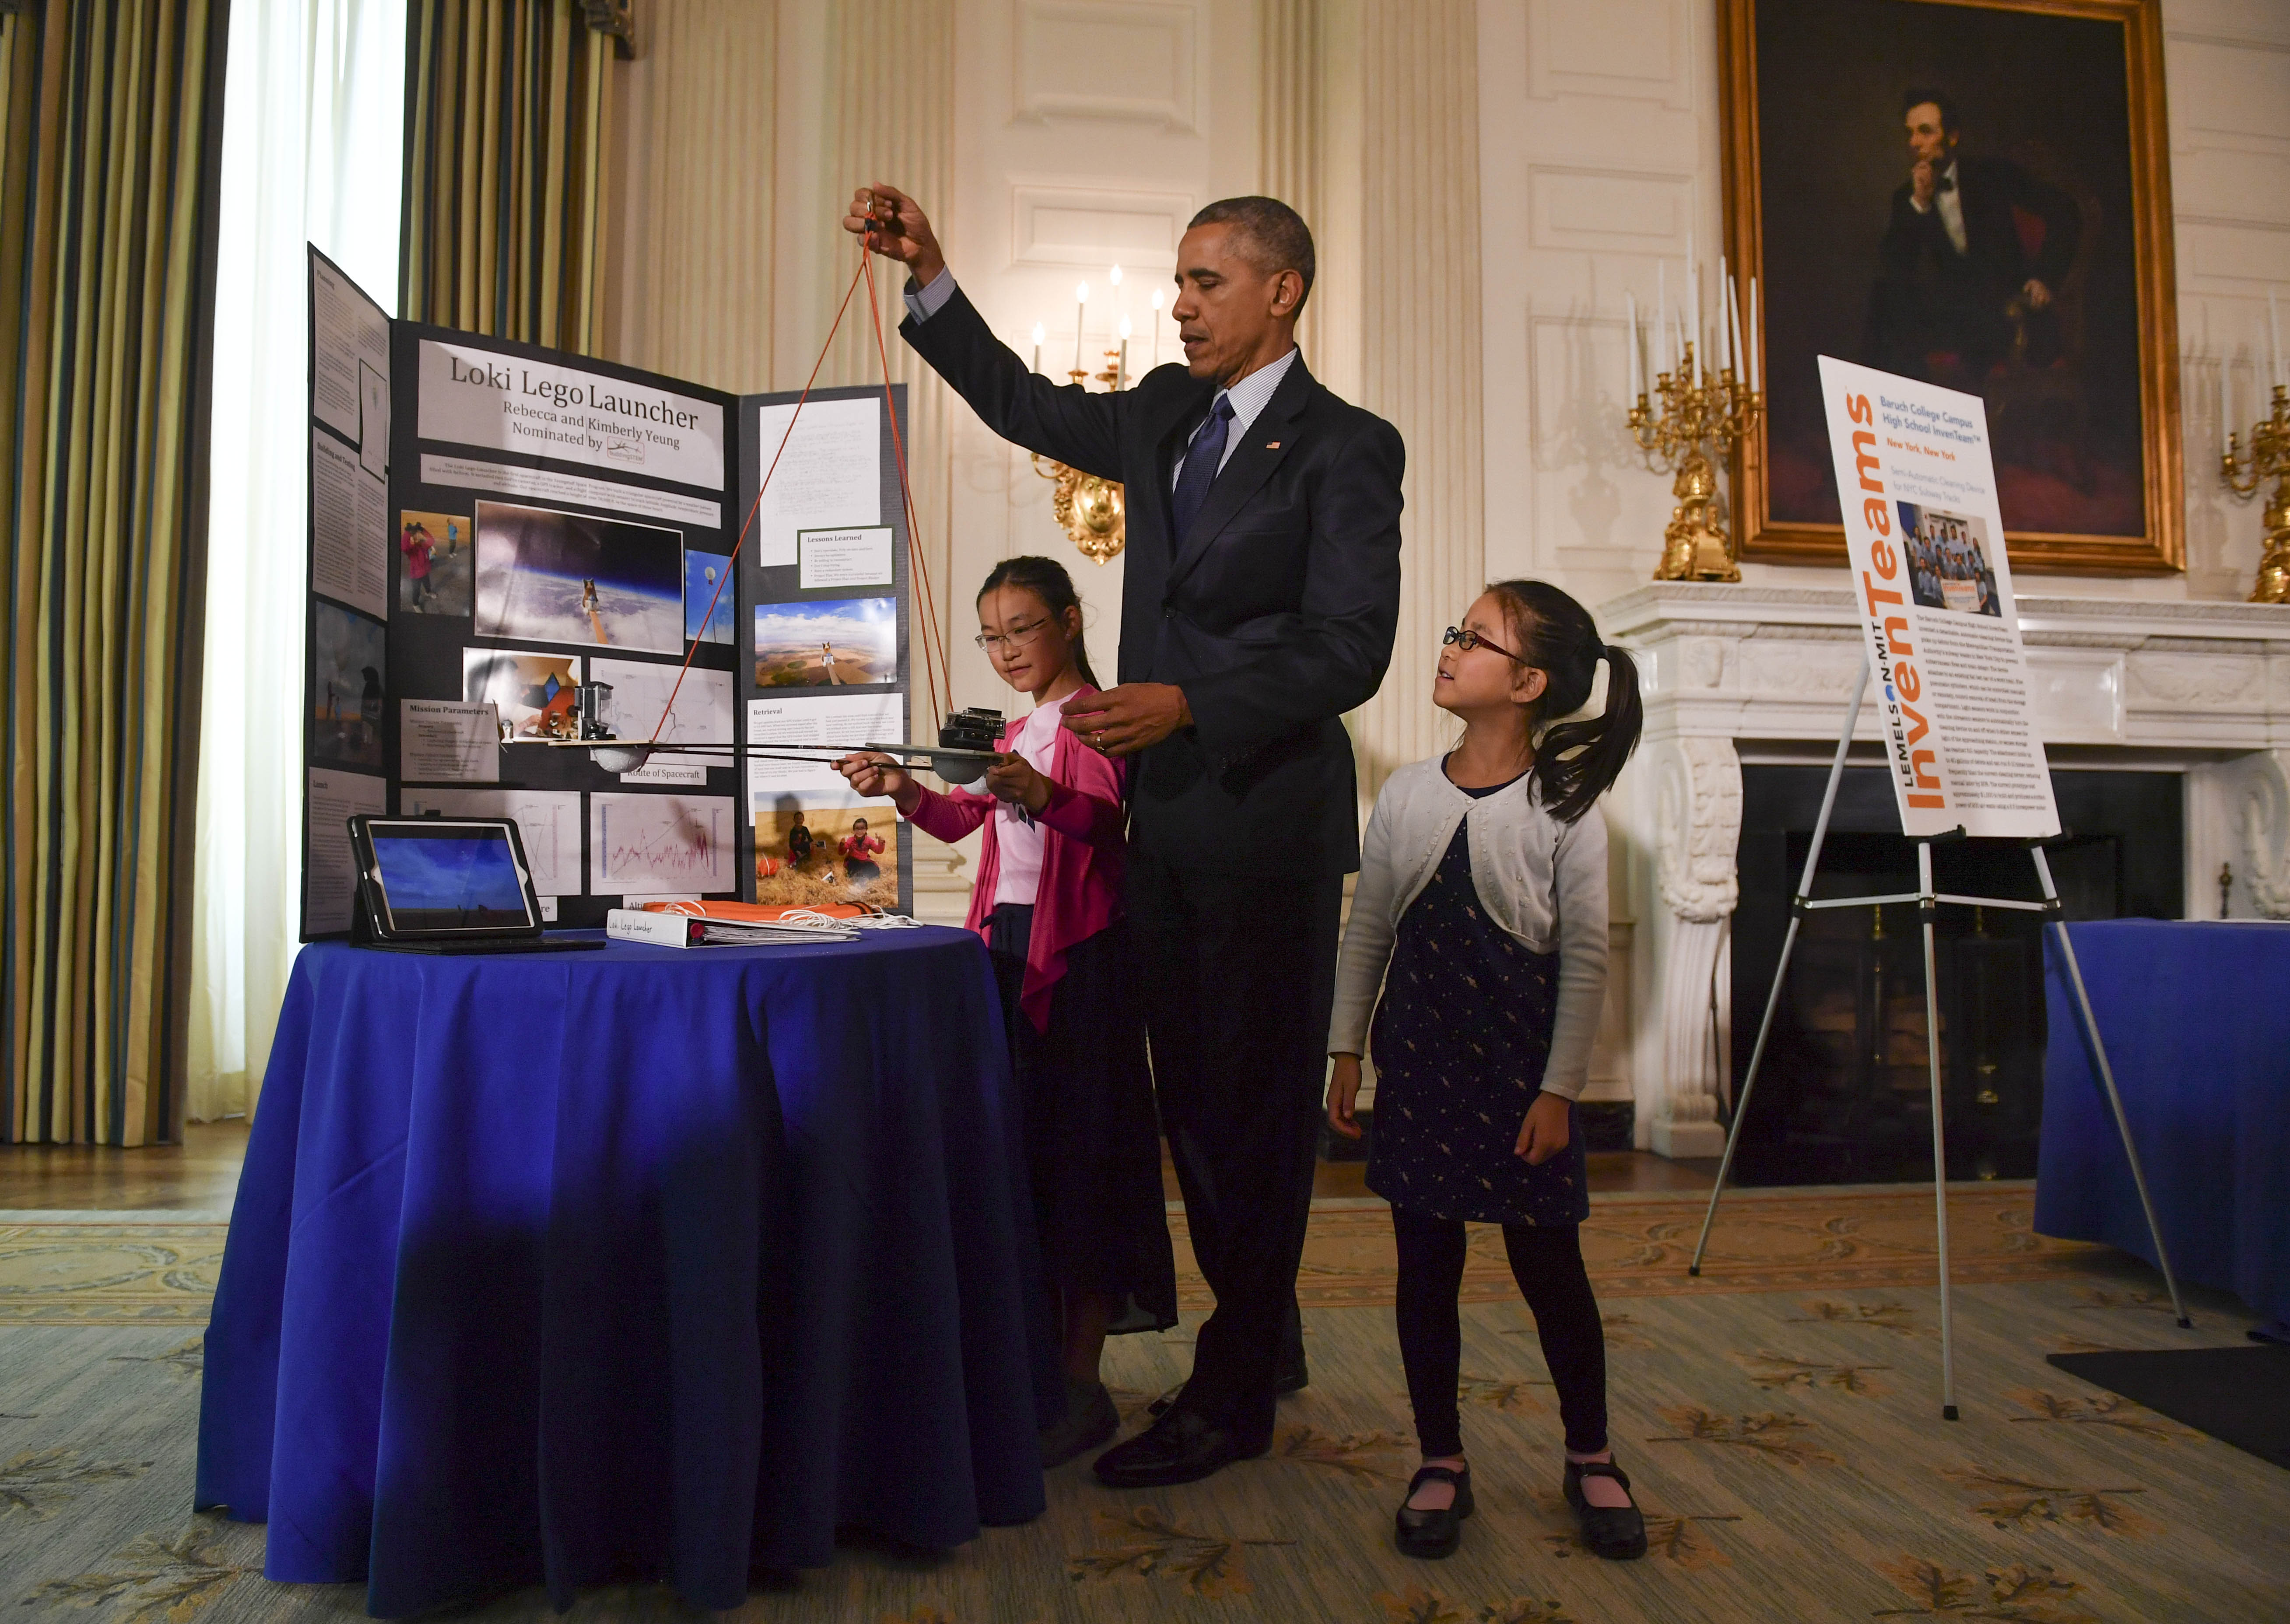 WASHINGTON, DC - APRIL 13: Sisters Kimberly, 9, right, and Rebe